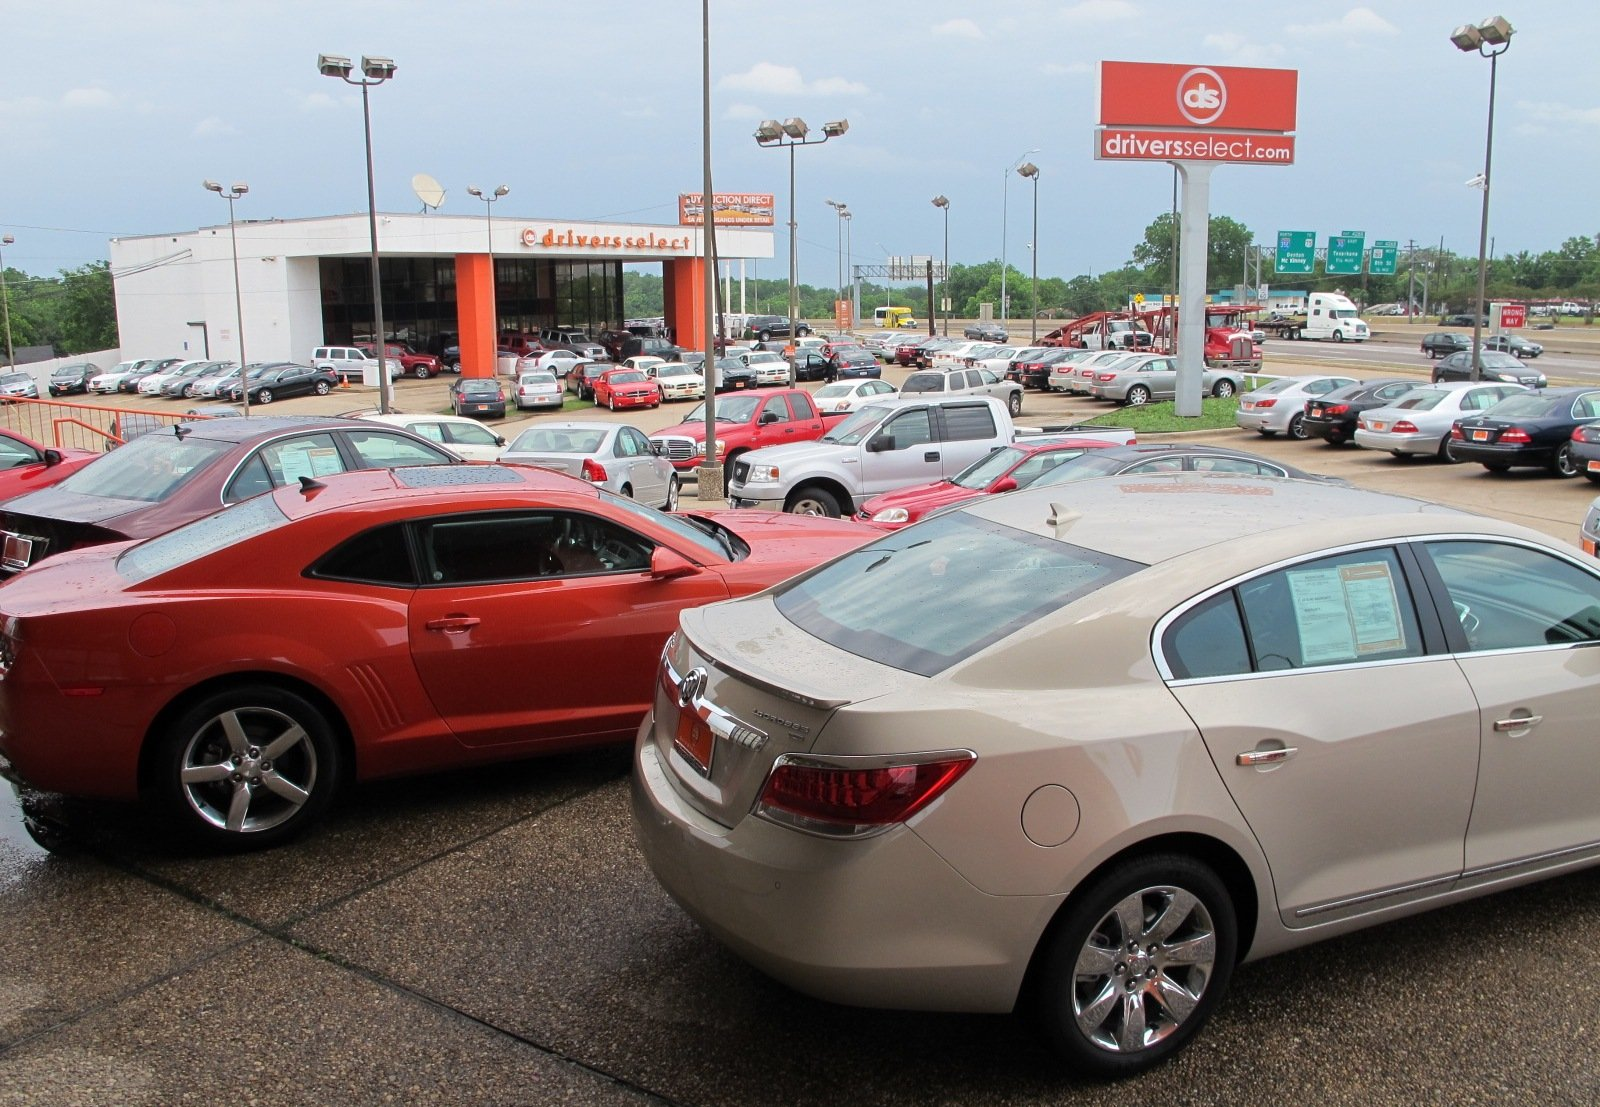 Driver Select Dallas >> Driversselect Adapts Boldly To Become A Driving Force In The